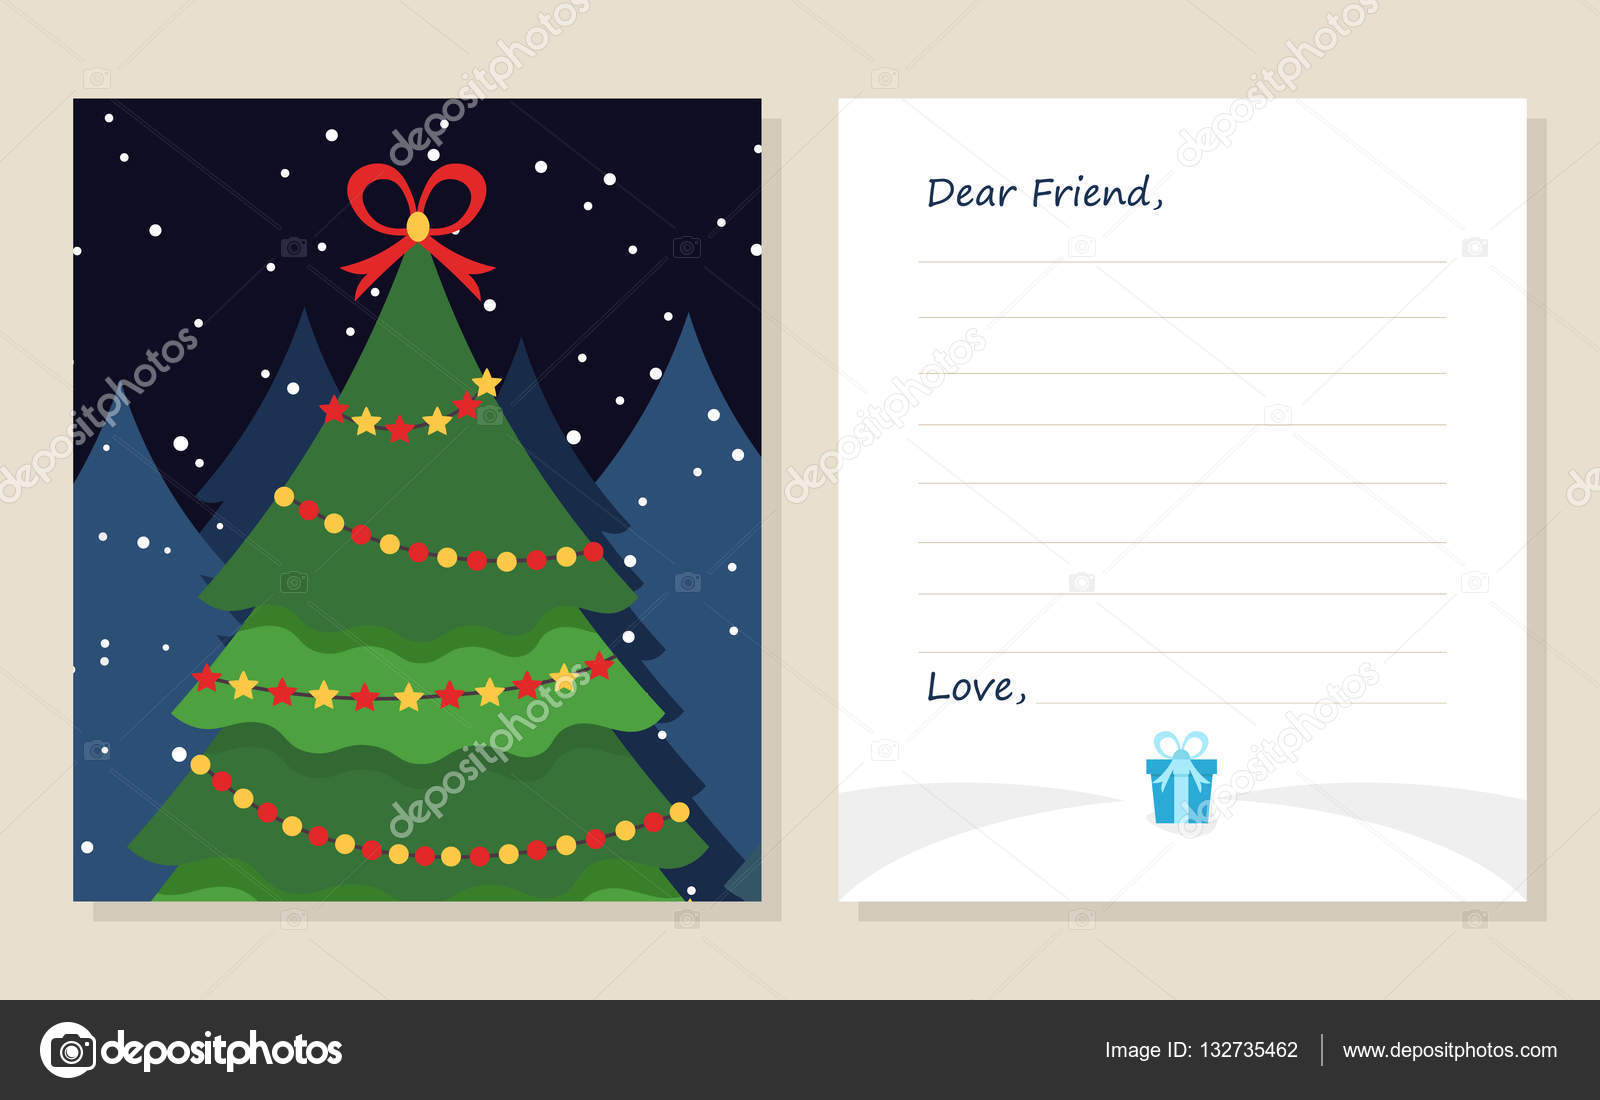 Template greeting card New year\'s or Merry Christmas letter to ...